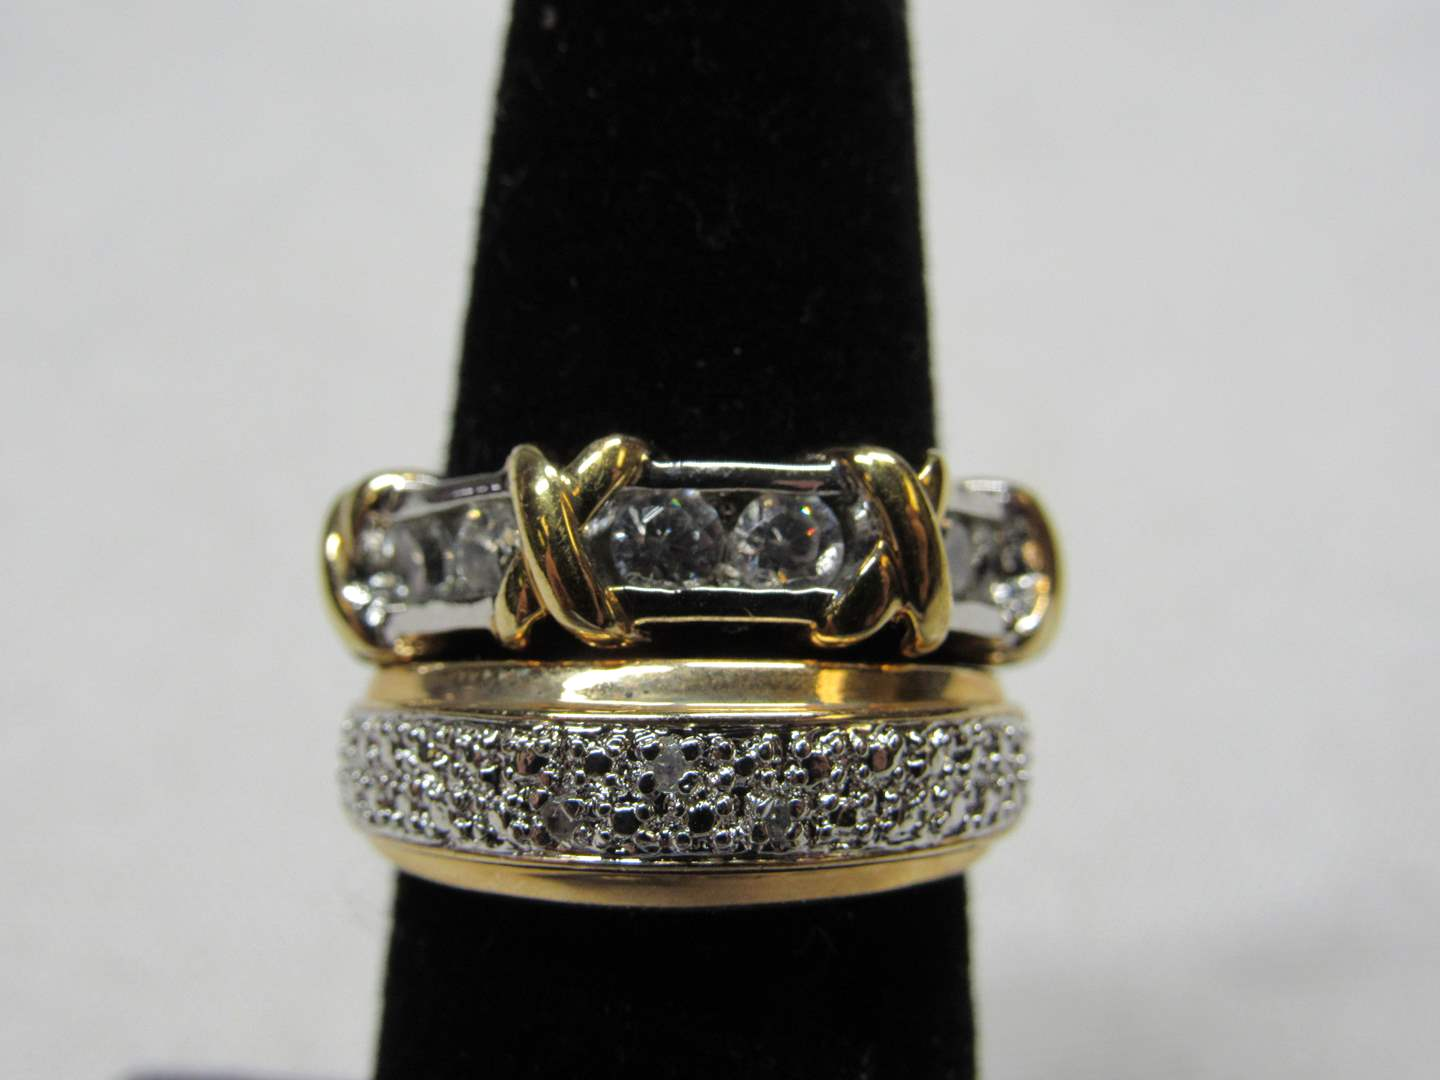 Lot # 237 2 gold overlay sterling silver rings w/cz's size 5&6 (main image)